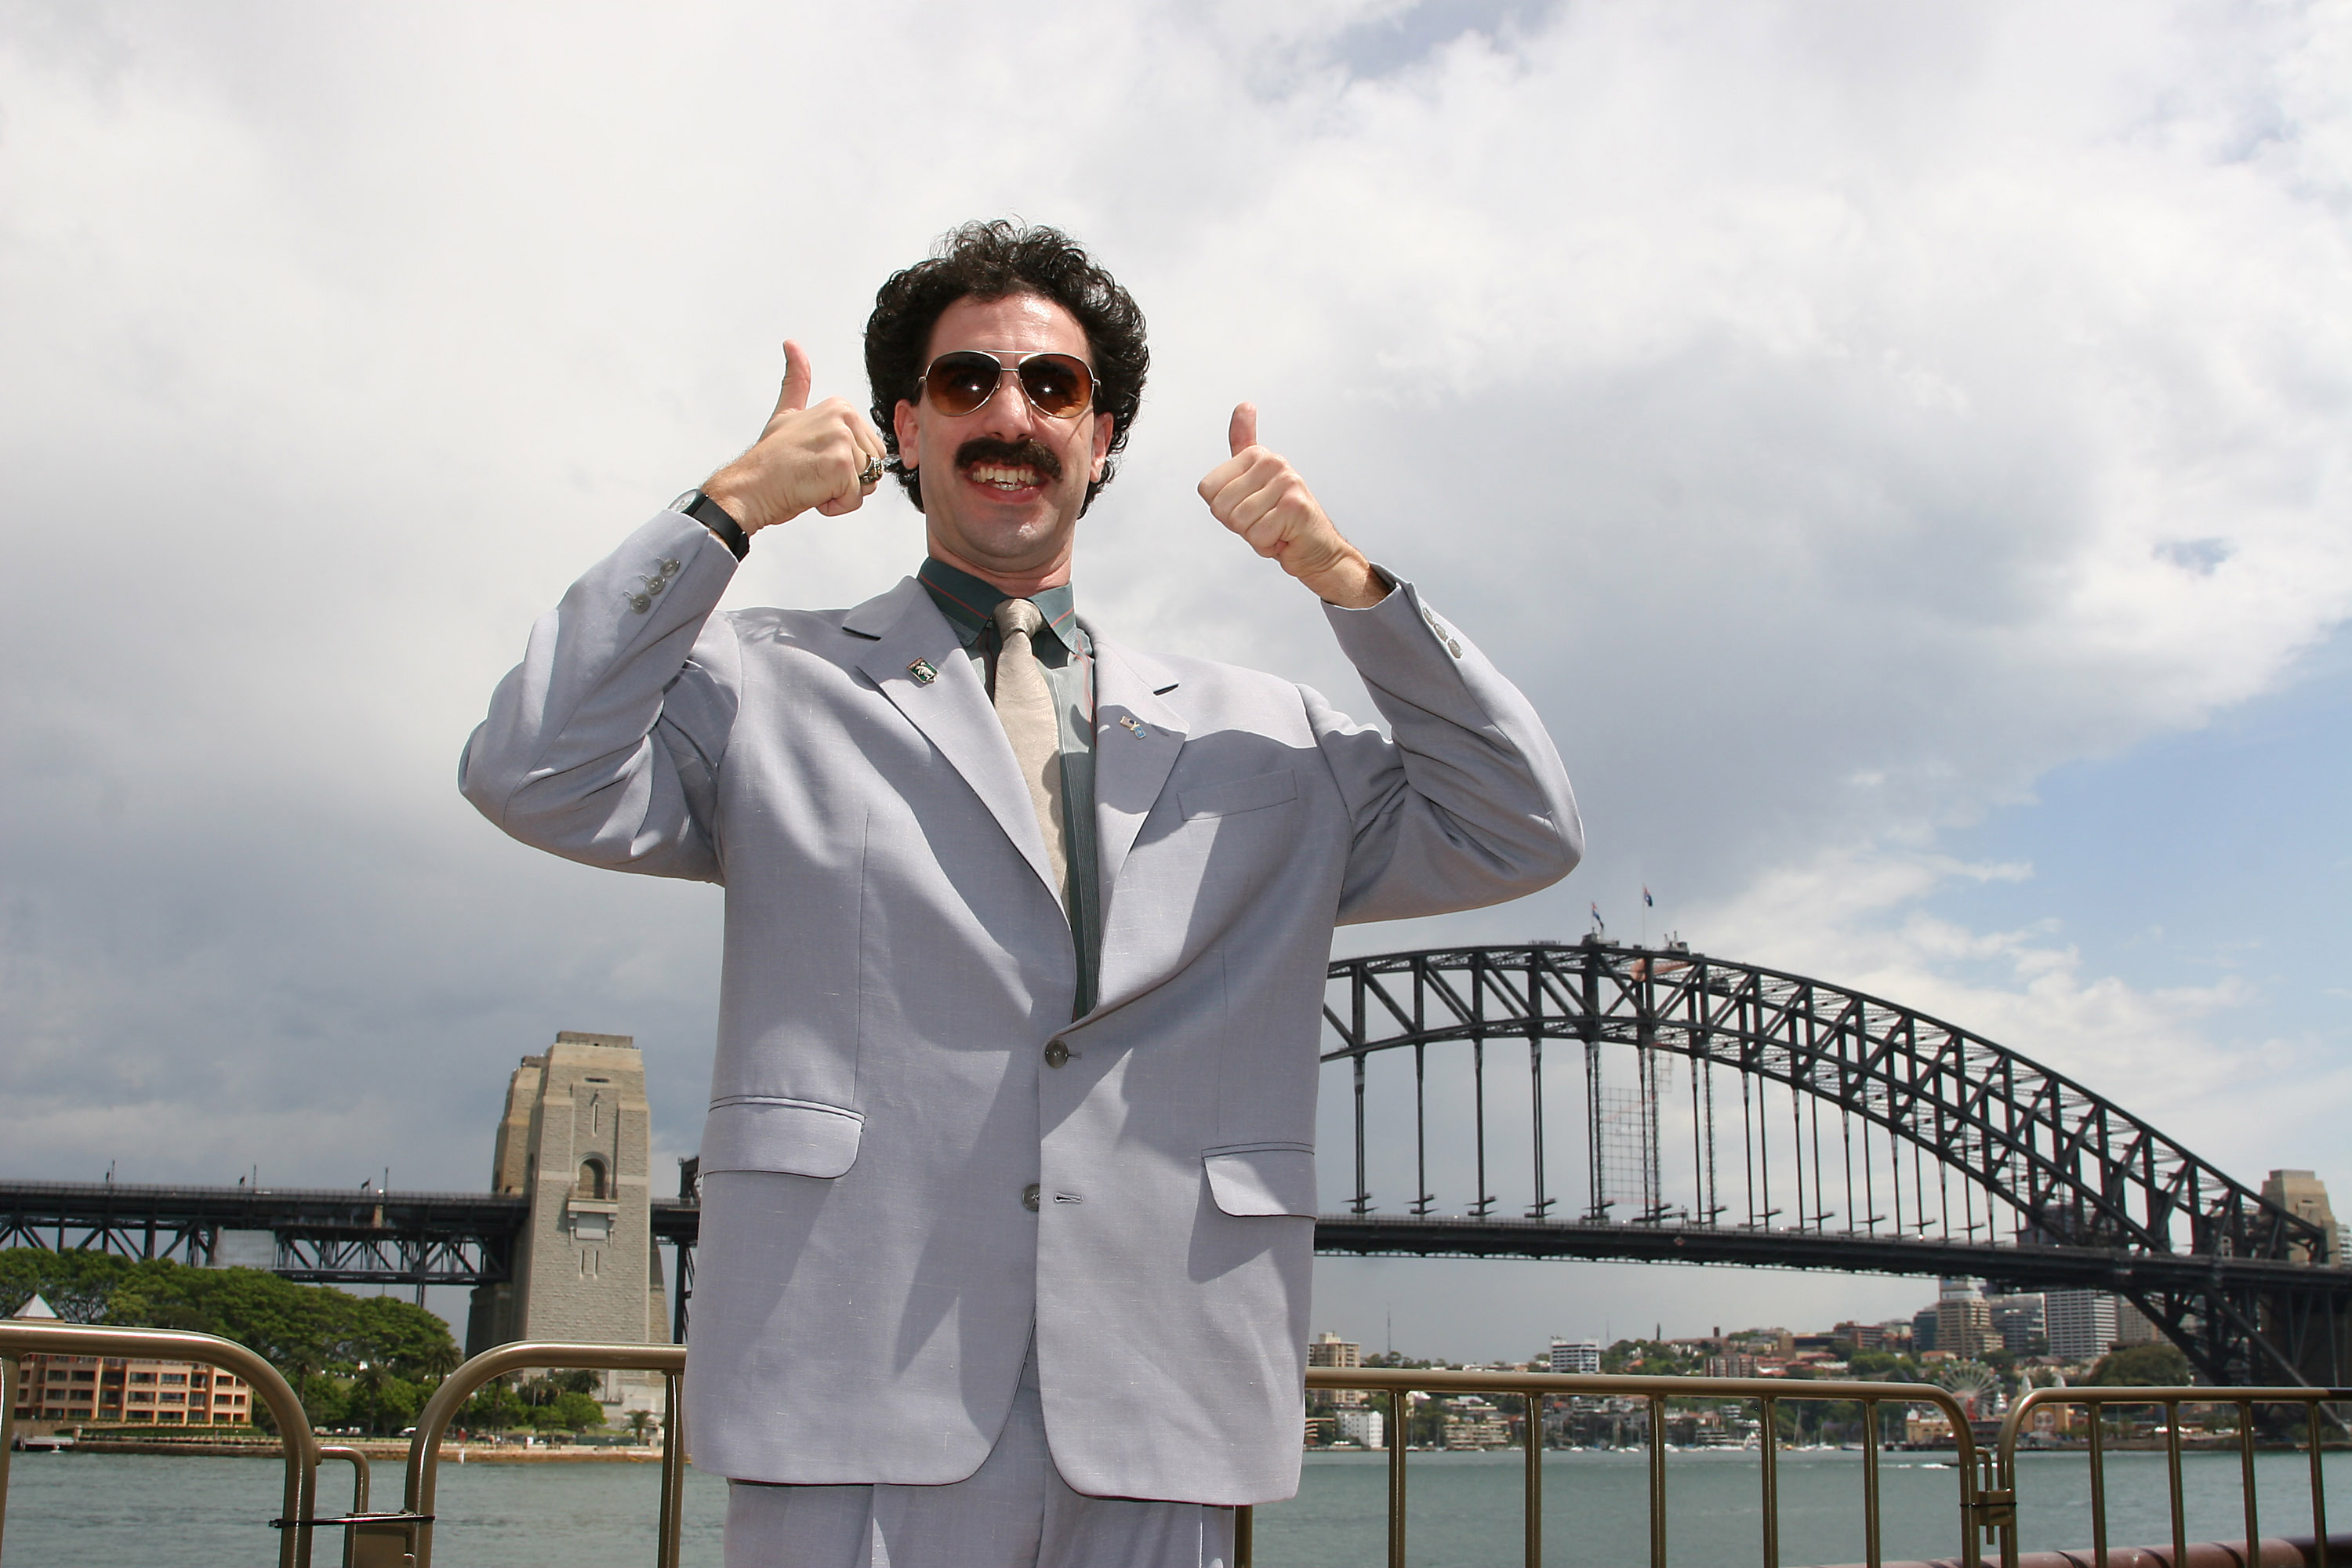 Sacha Baron Cohen as  Borat  during a press conference in Sydney, Australia on Nov. 12, 2006.